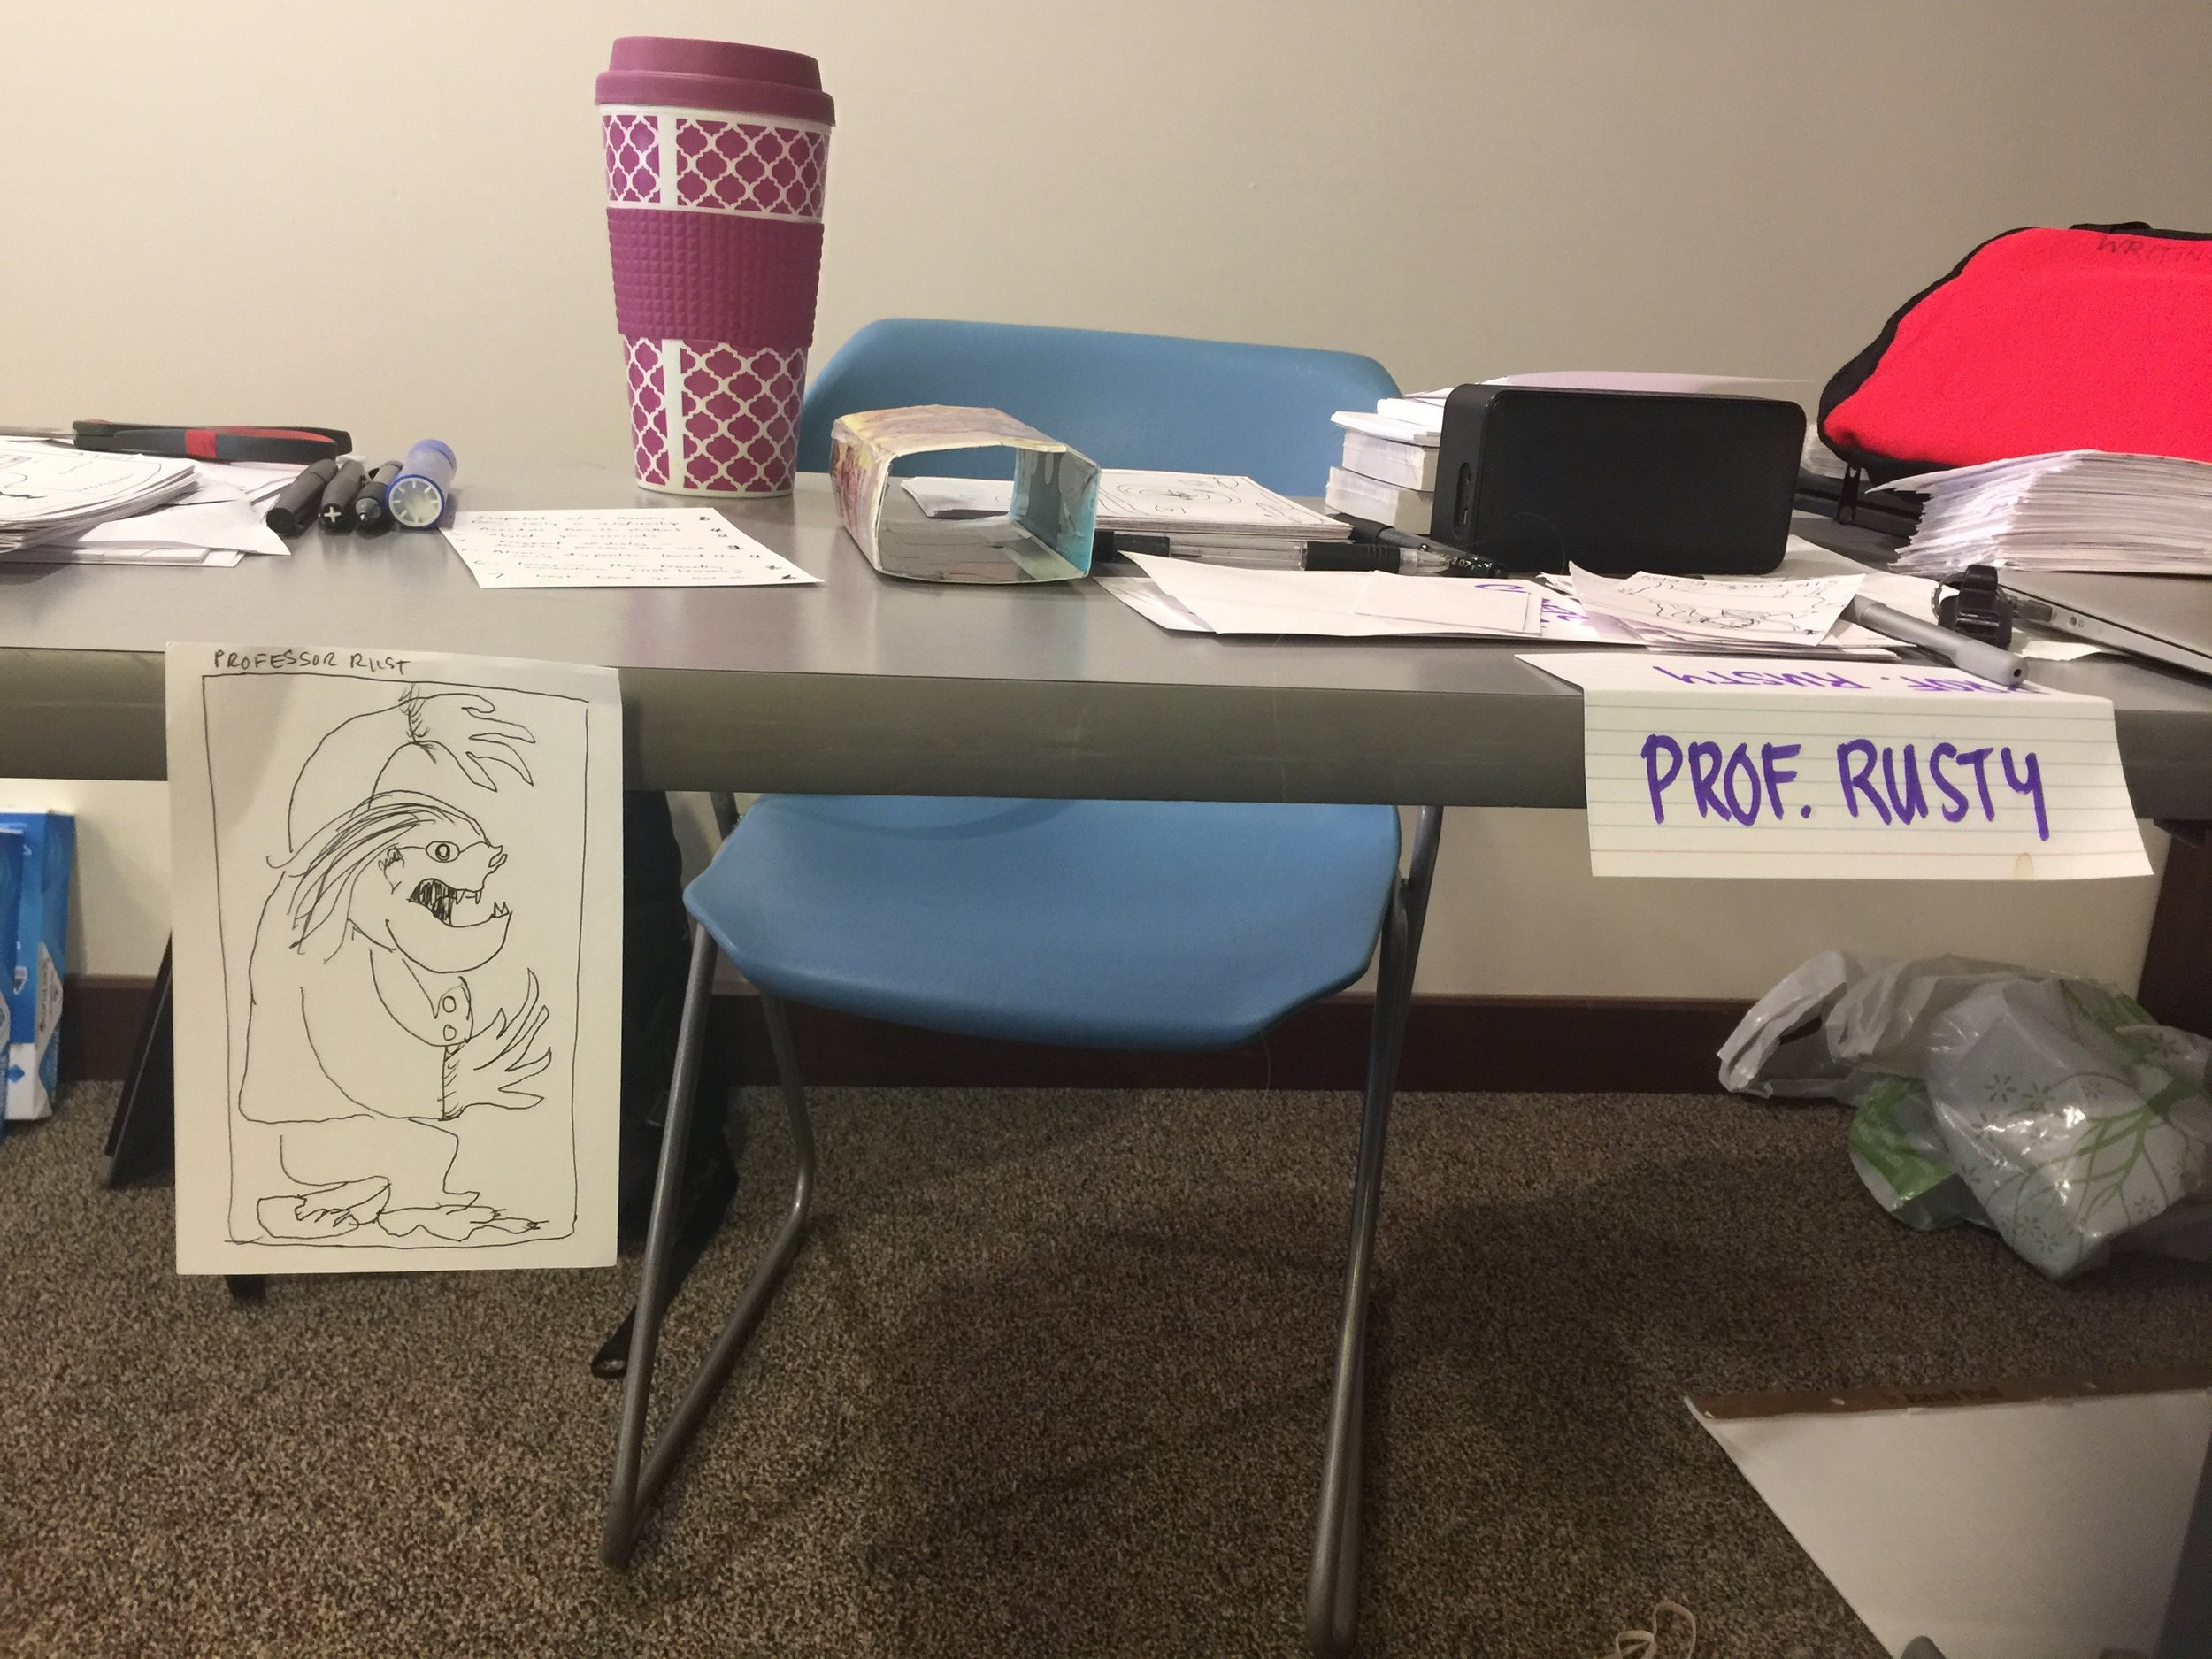 The desk of Clarion 2017 Week 1 co-instructor Dan Chaon, aka Professor Rusty